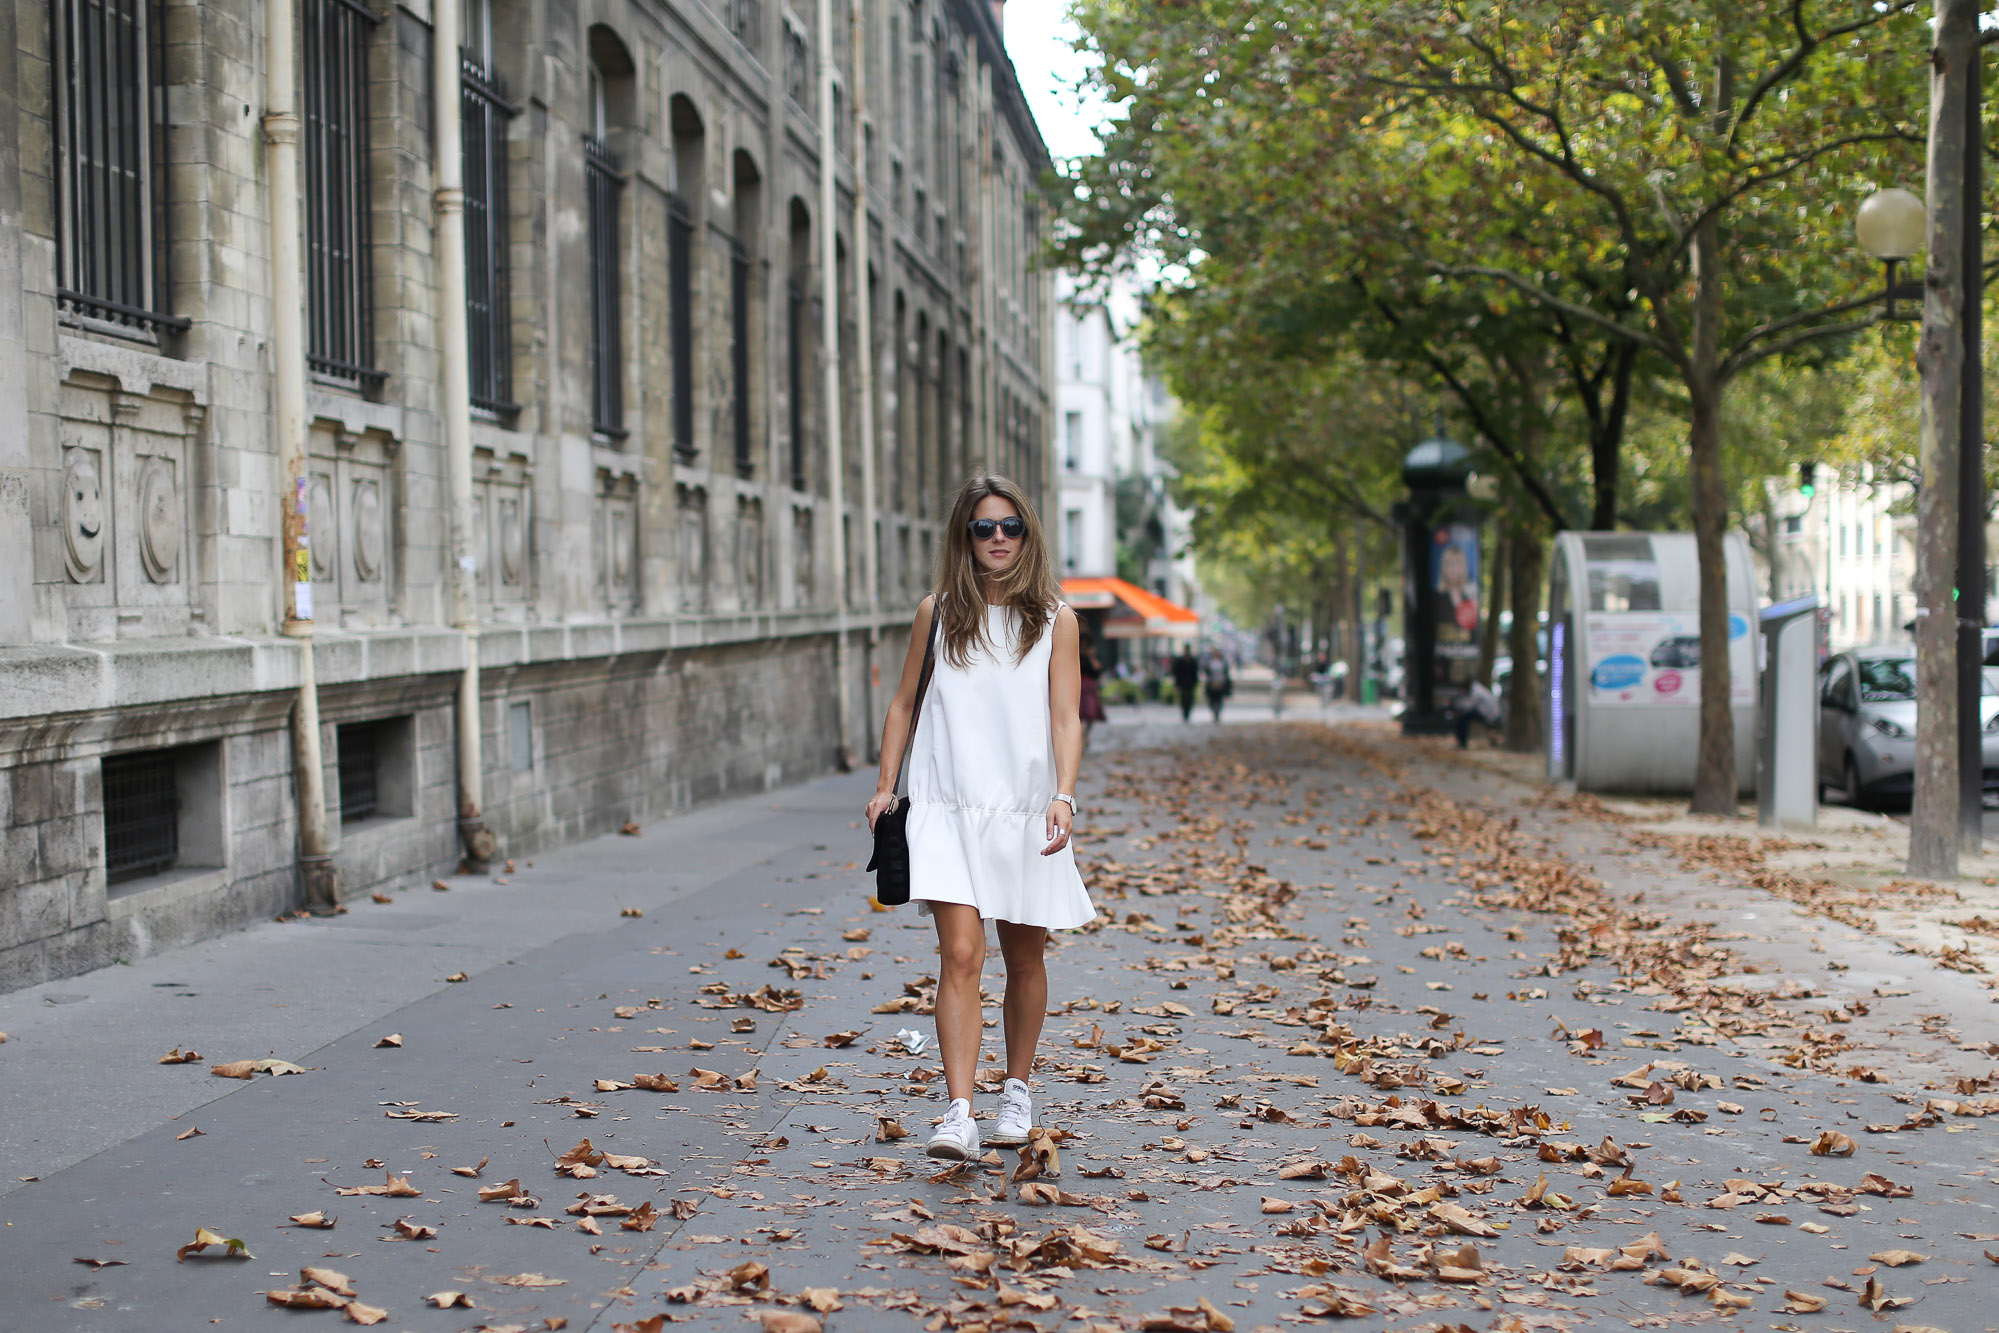 Clochet_paris_h&m_trend_white_neoprene_dress_adidas_stan_smith-1-8